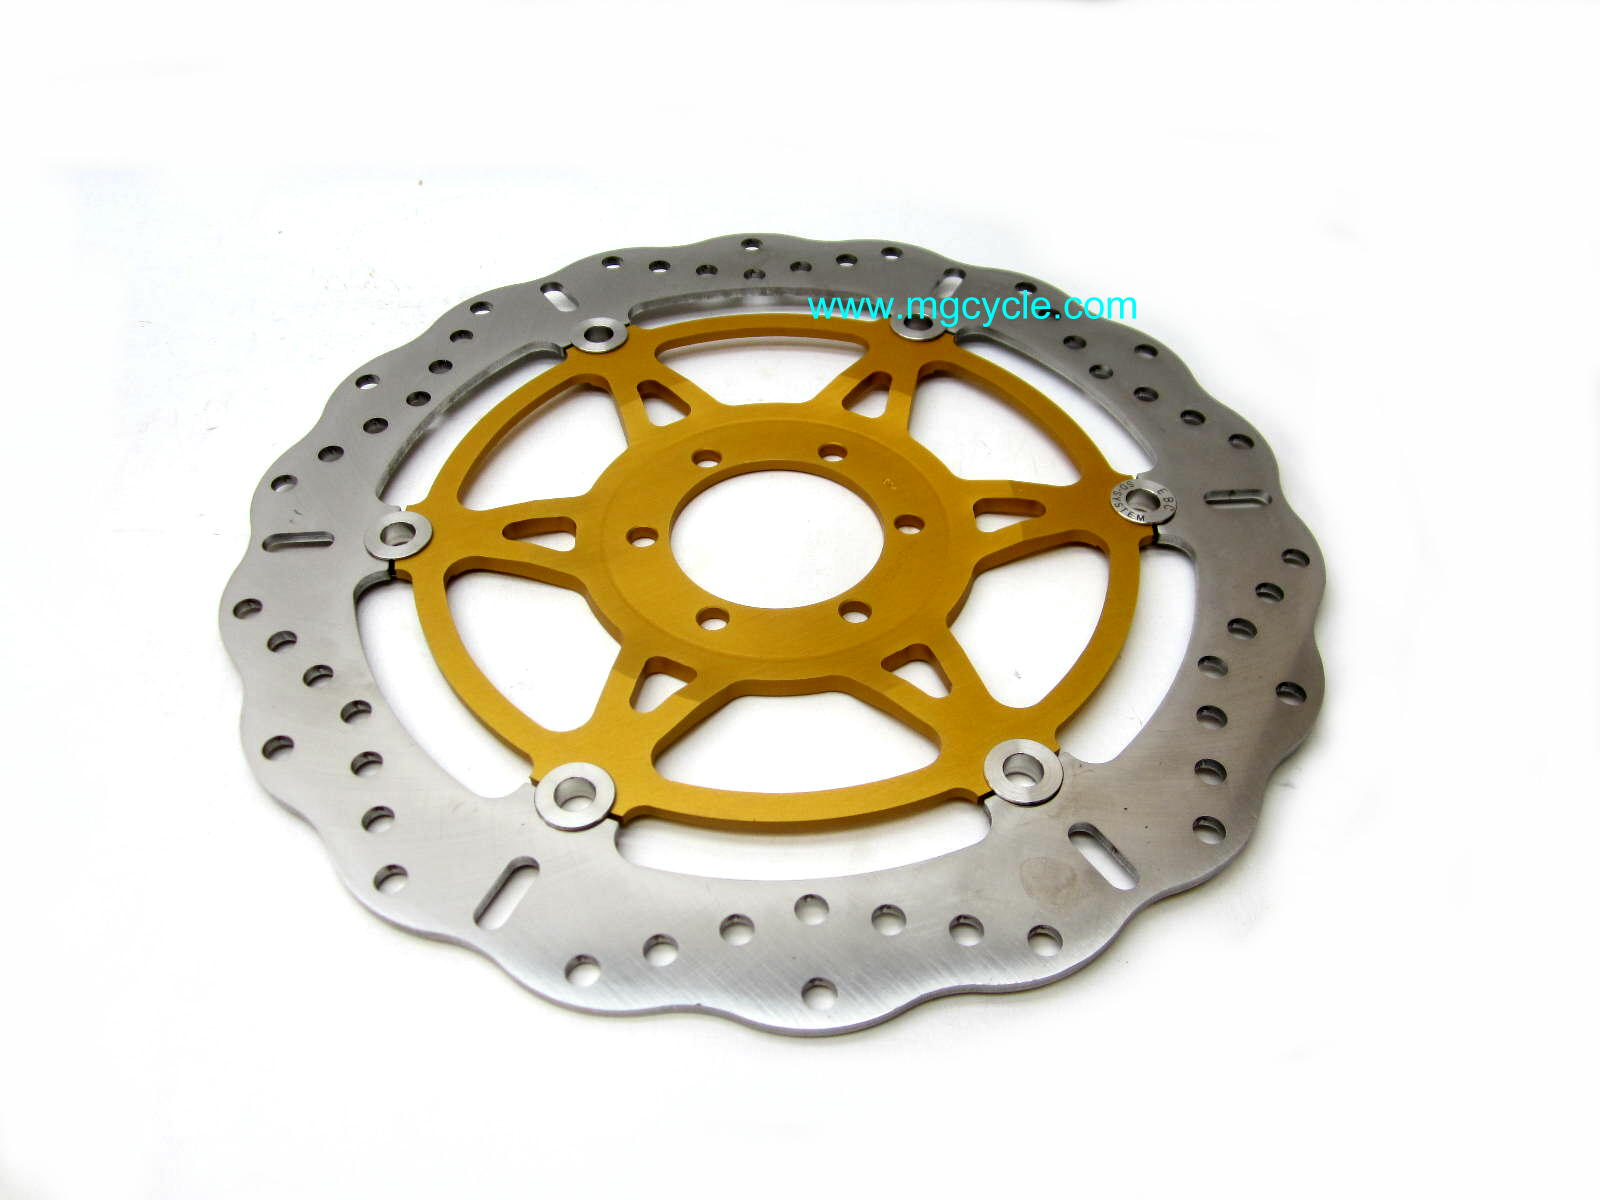 EBC ProLite Contour 320mm brake disk most models 1998-2015